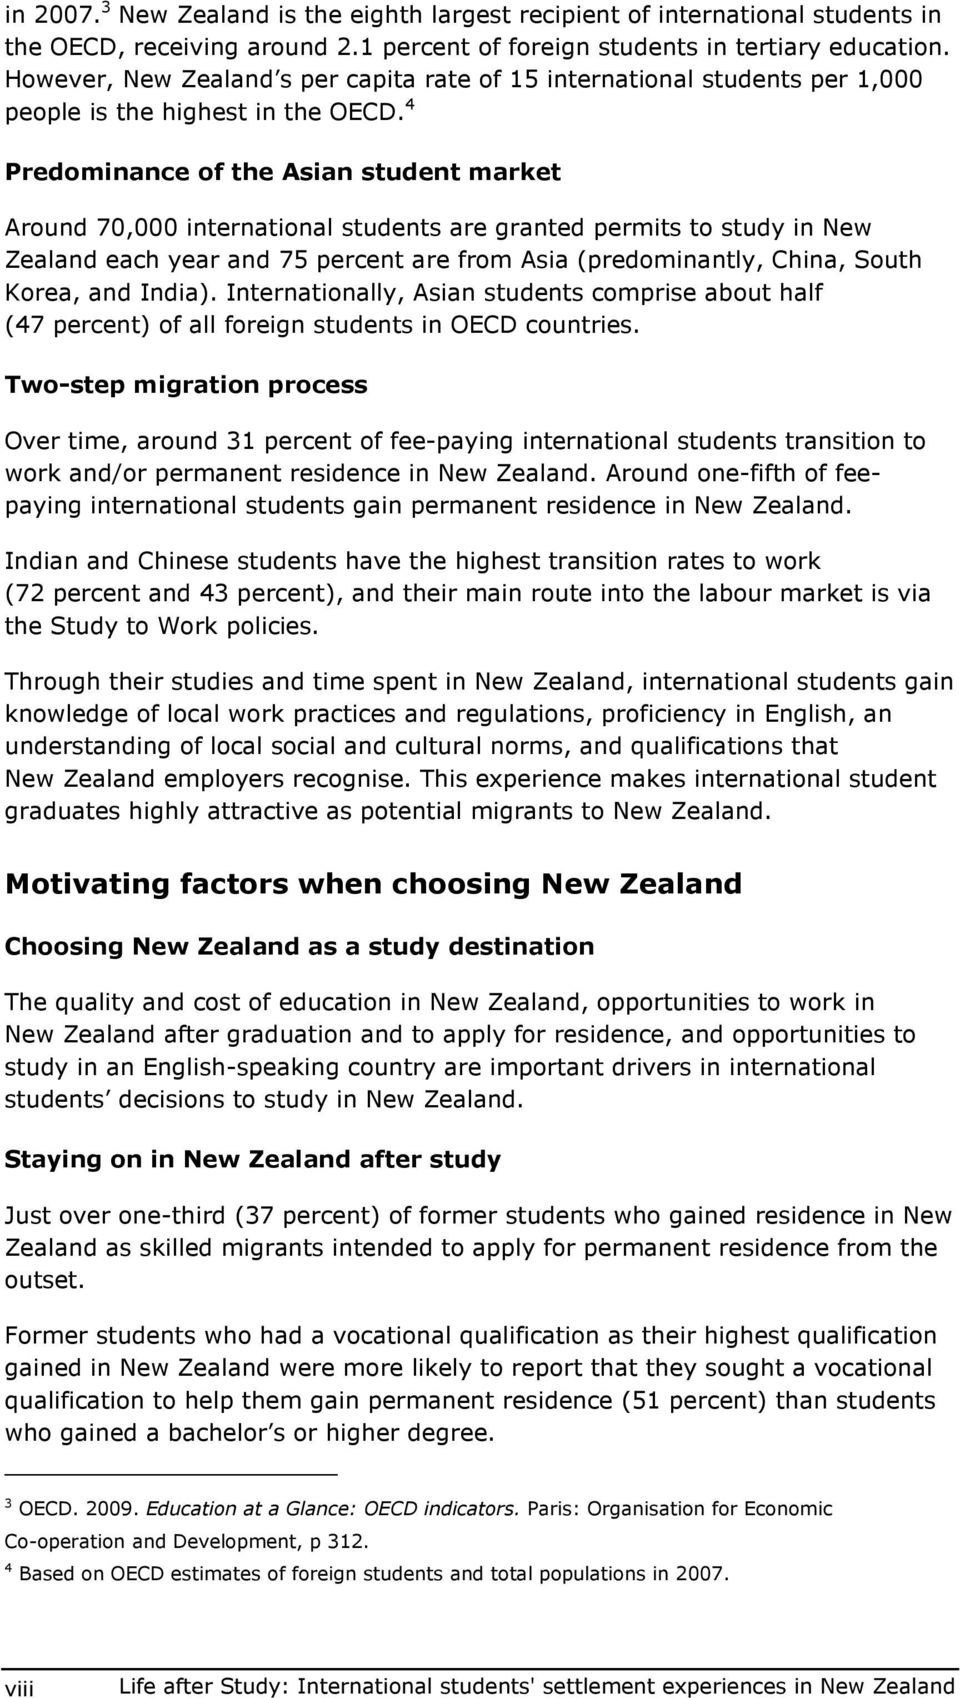 4 Predminance f the Asian student market Arund 70,000 internatinal students are granted permits t study in New Zealand each year and 75 percent are frm Asia (predminantly, China, Suth Krea, and